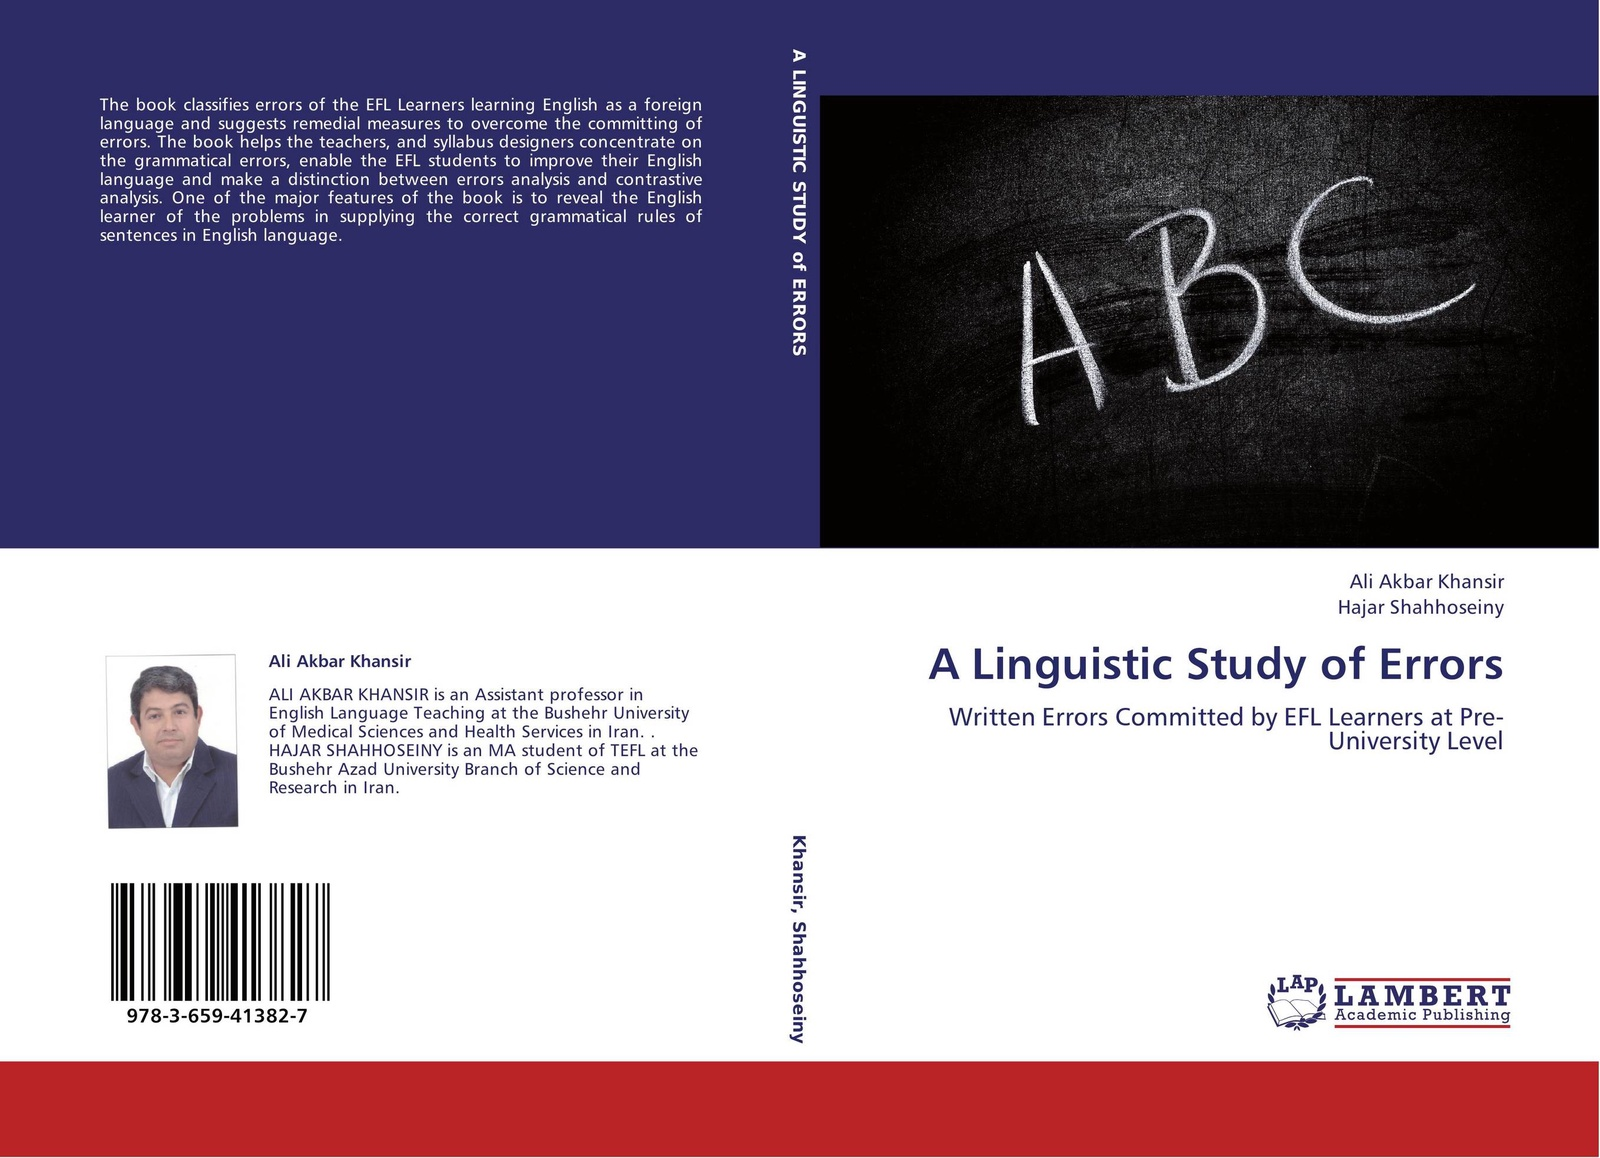 ALI AKBAR KHANSIR and Hajar Shahhoseiny A Linguistic Study of Errors fred a frederick augustus mccord errors in canadian history